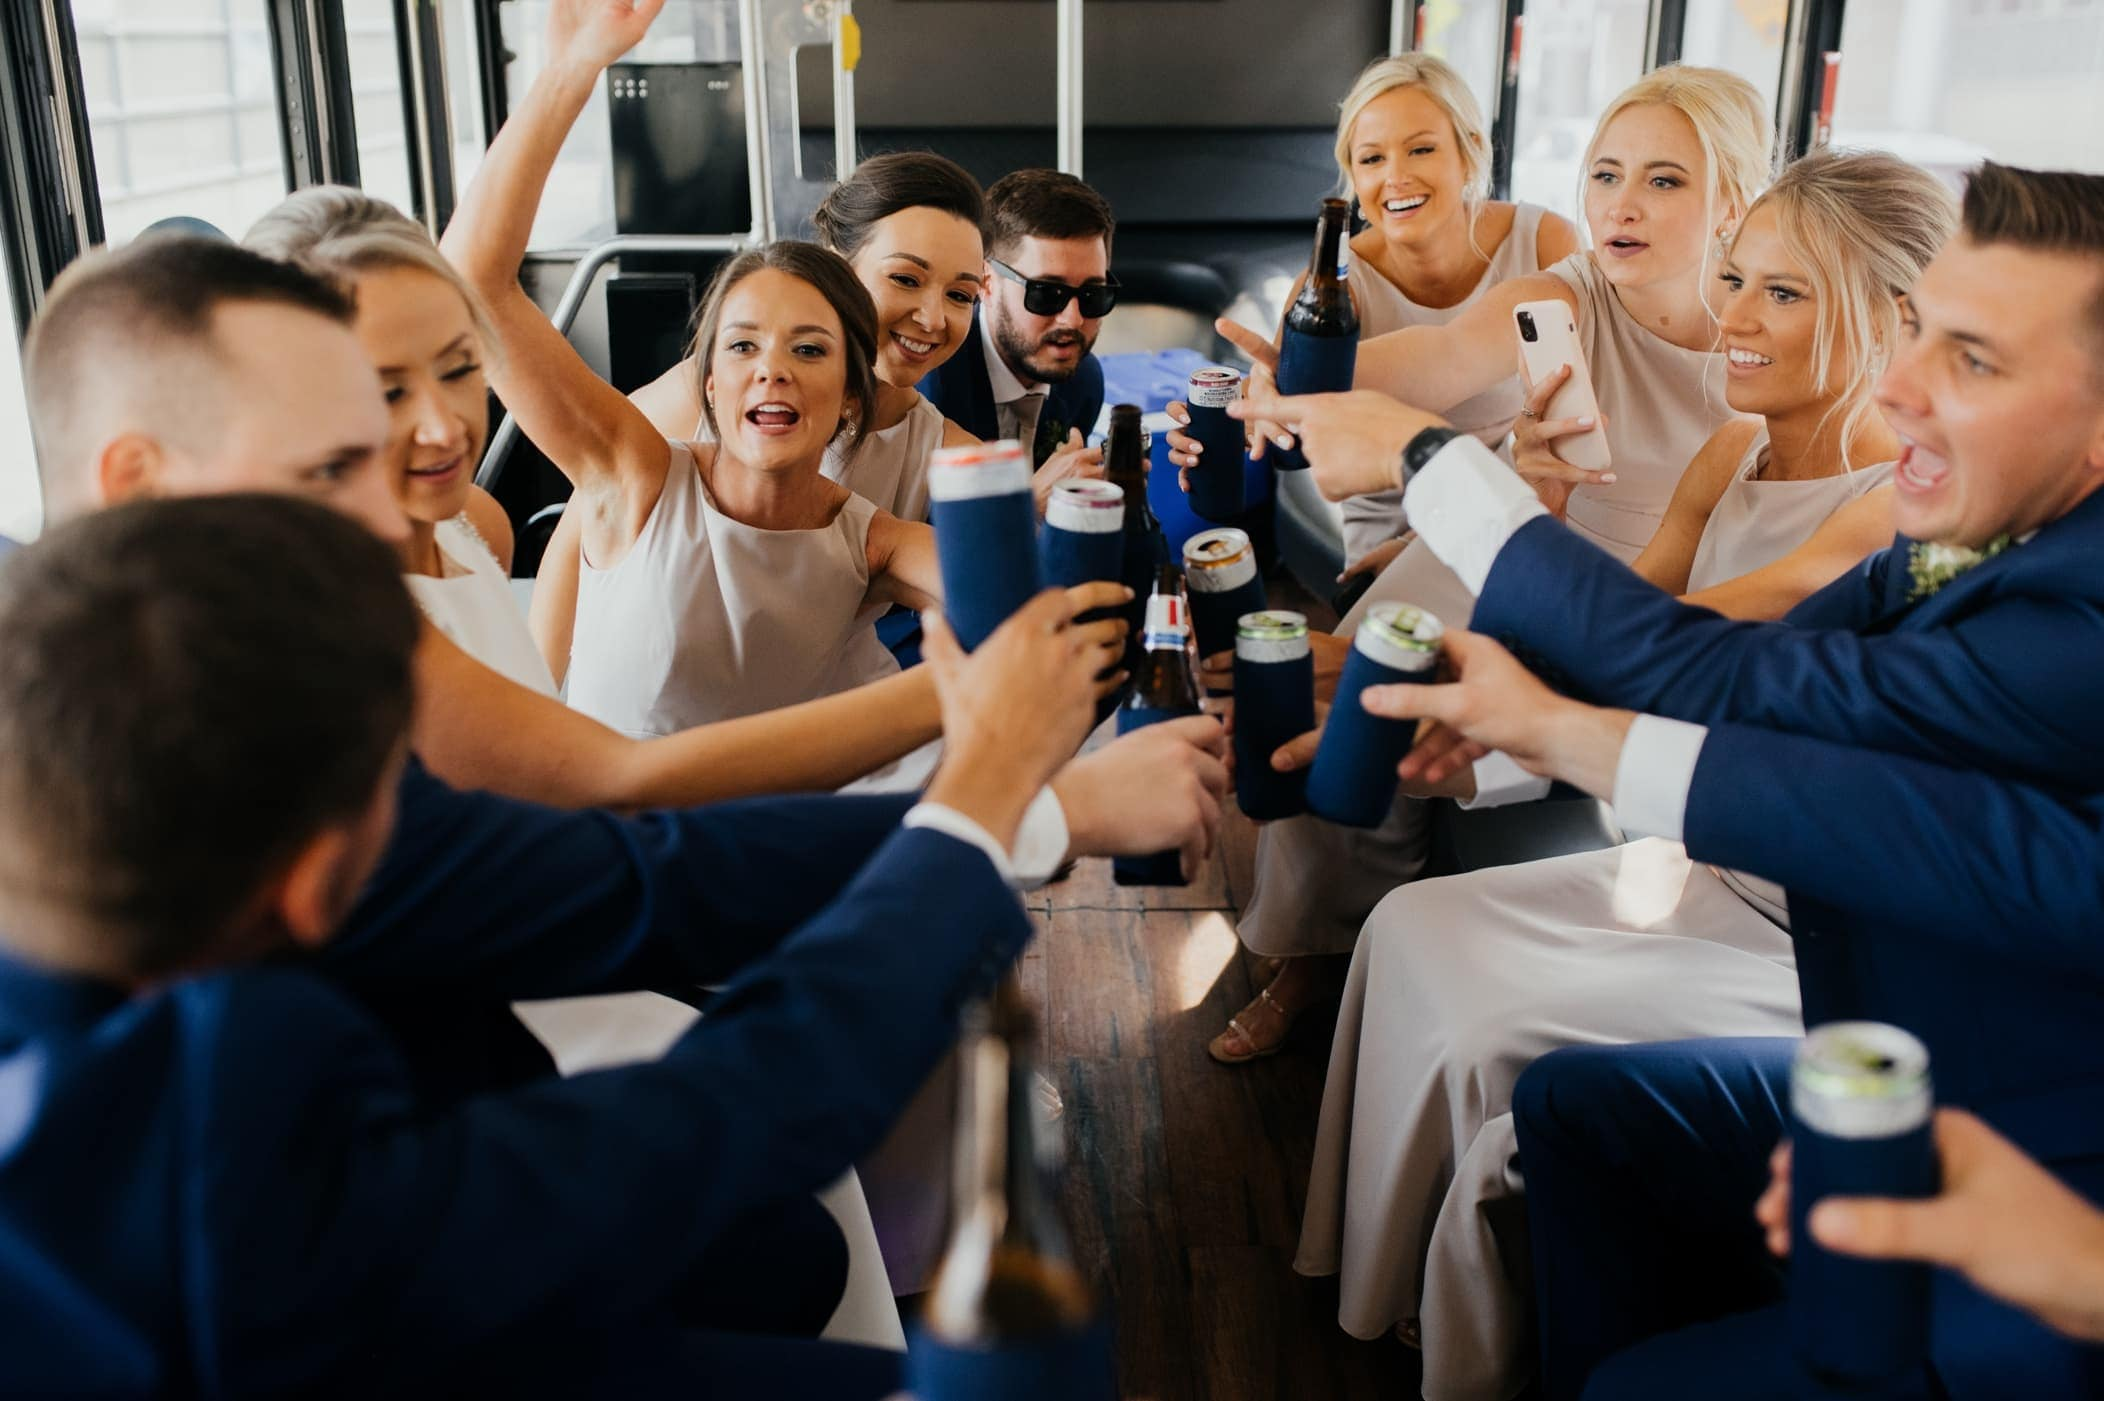 wedding party toast on party bus kc